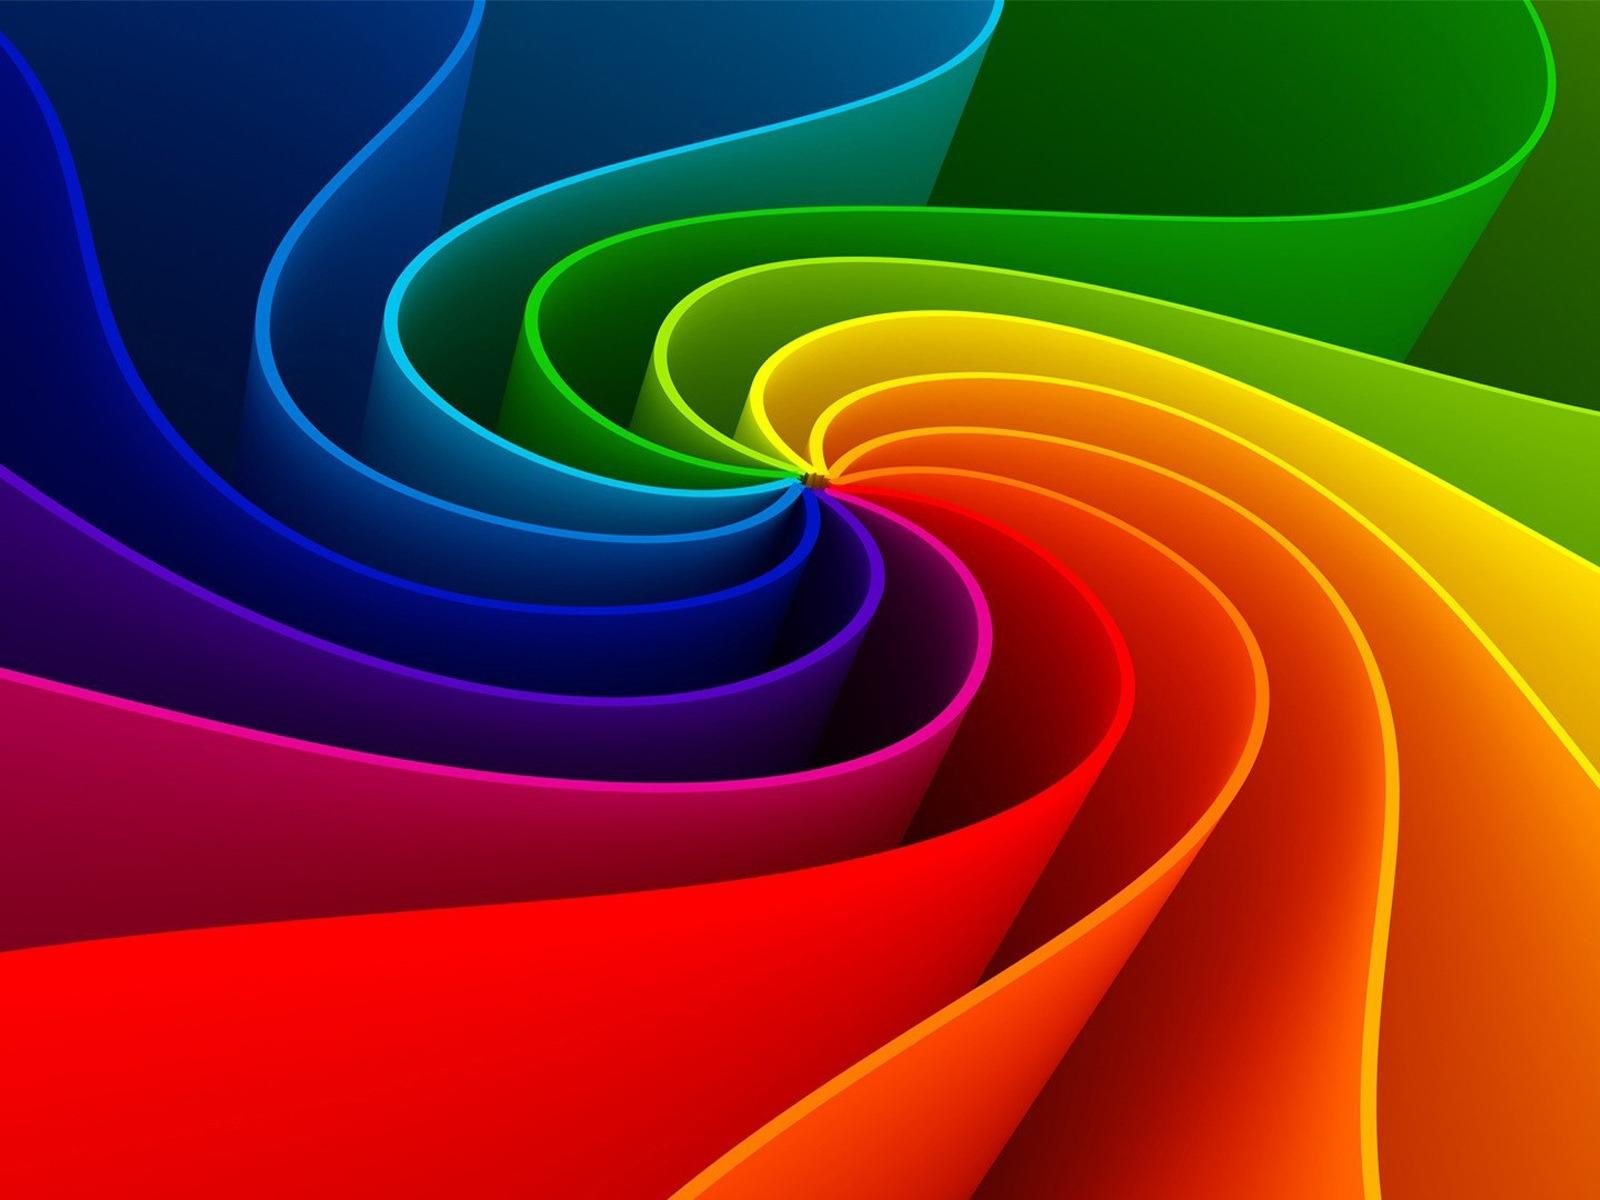 3D Abstract Rainbow 1600x1200